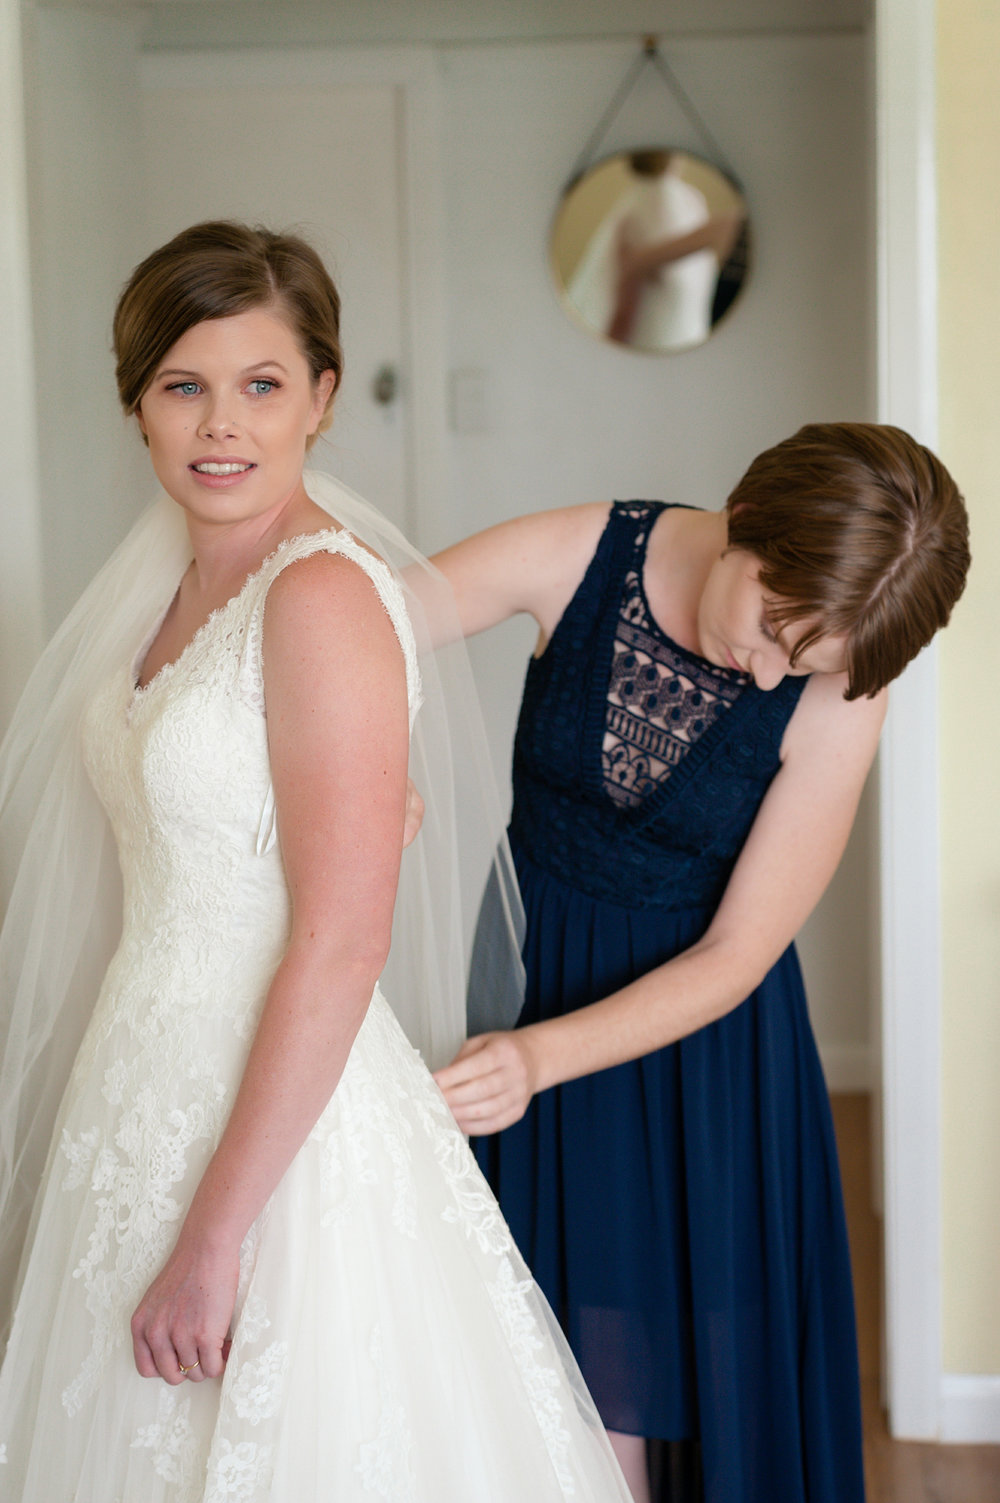 Bride_and_bridesmaid